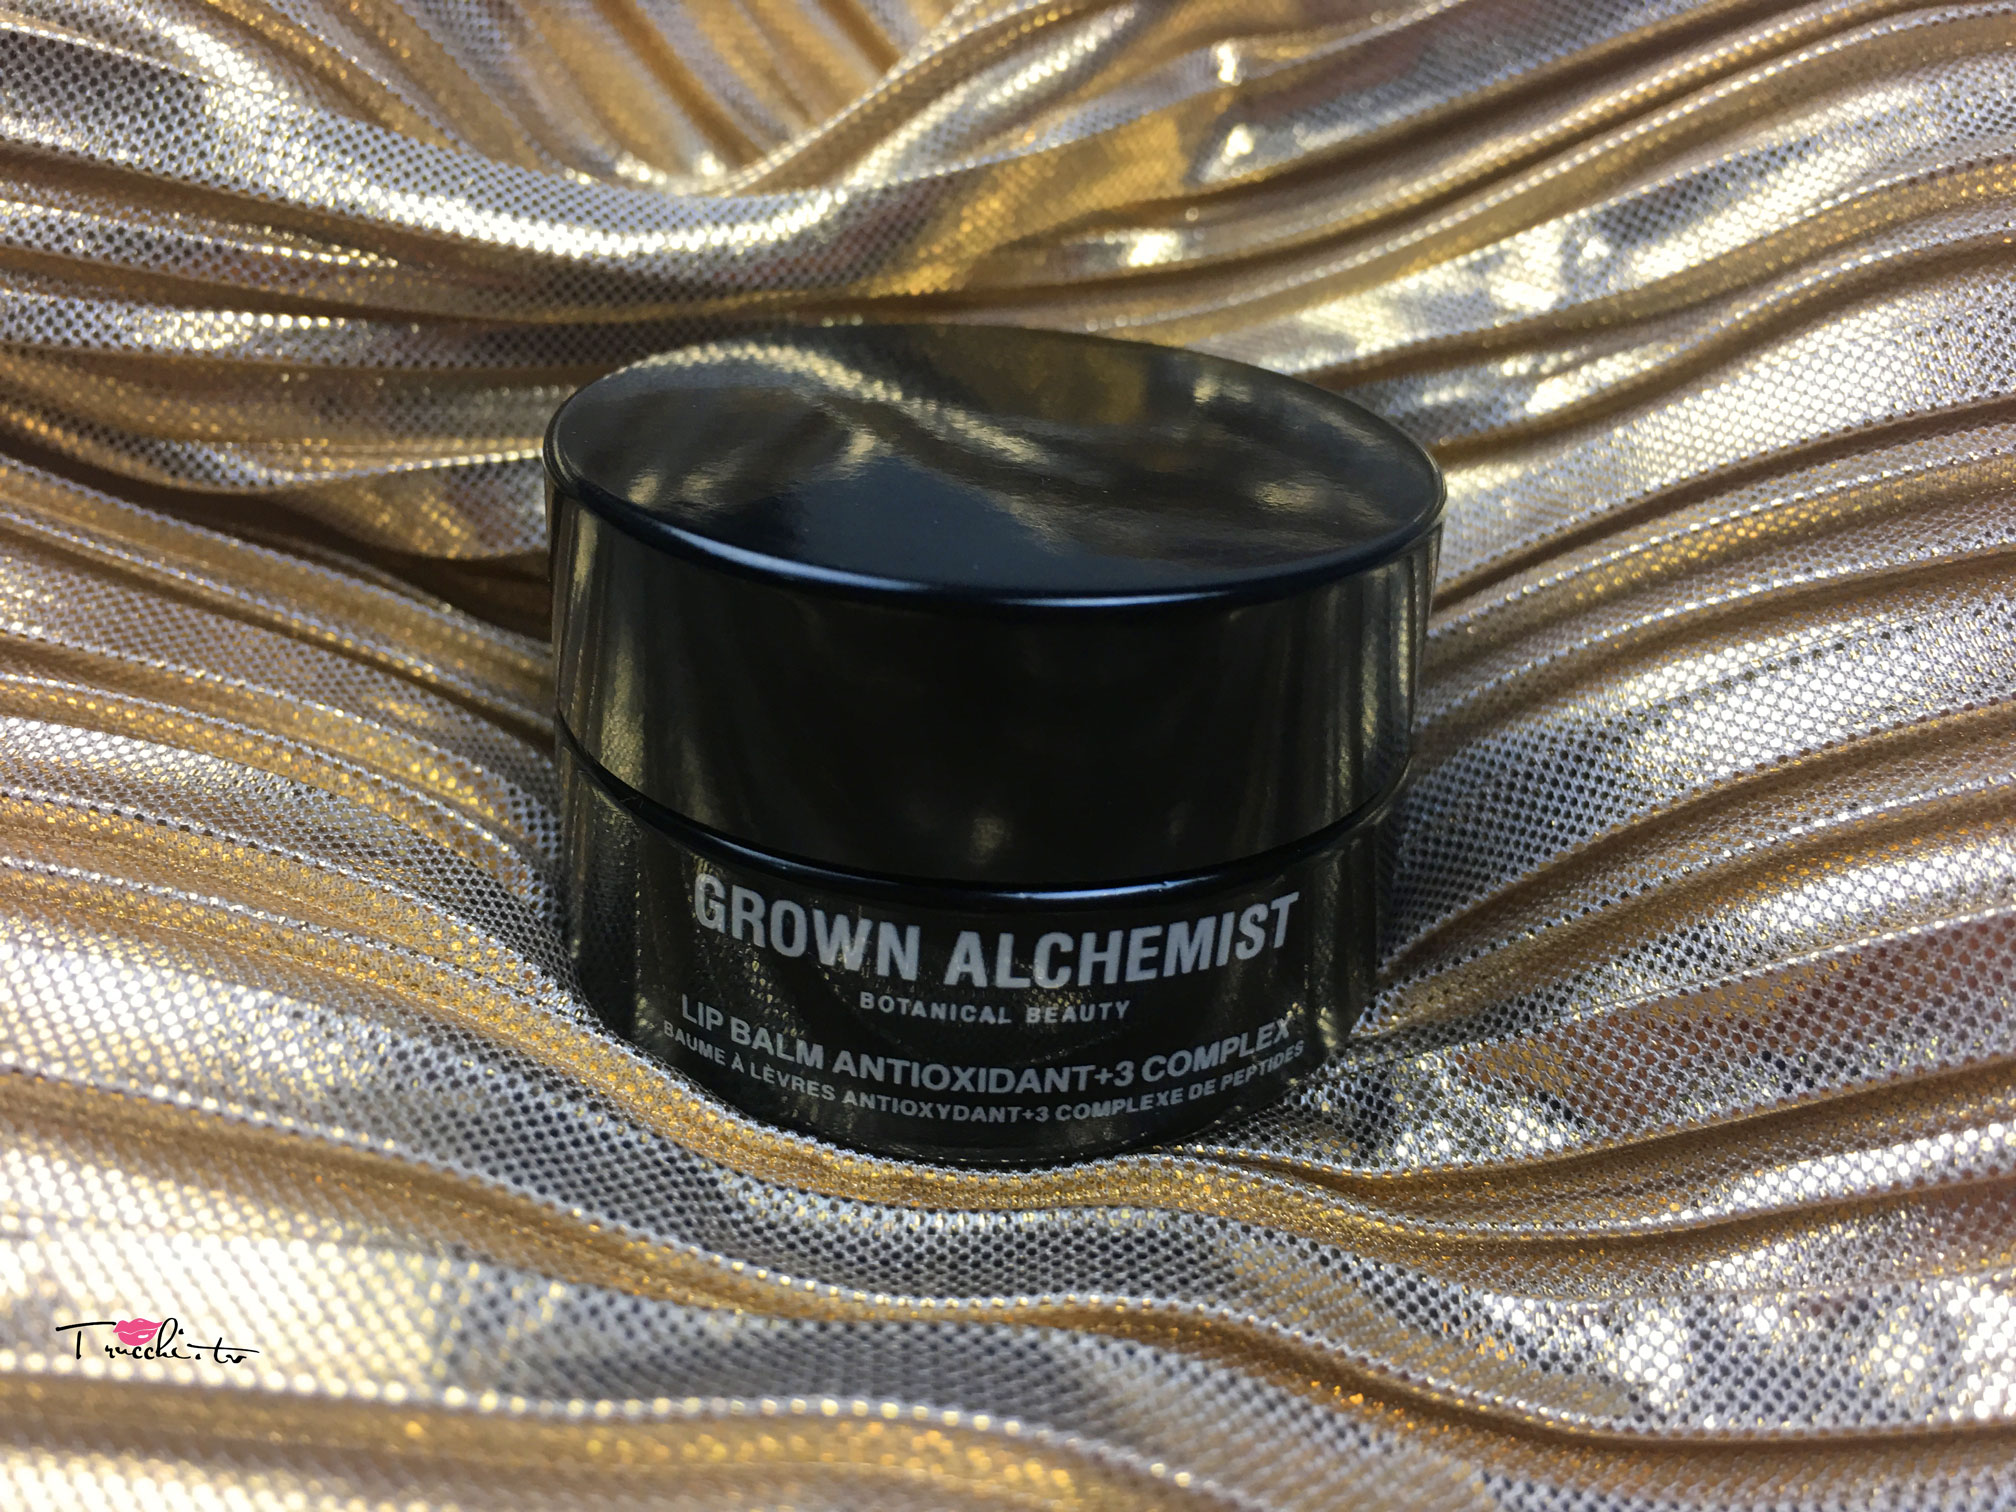 Grown Alchemist Lip Balm Antioxidant +3 Complex